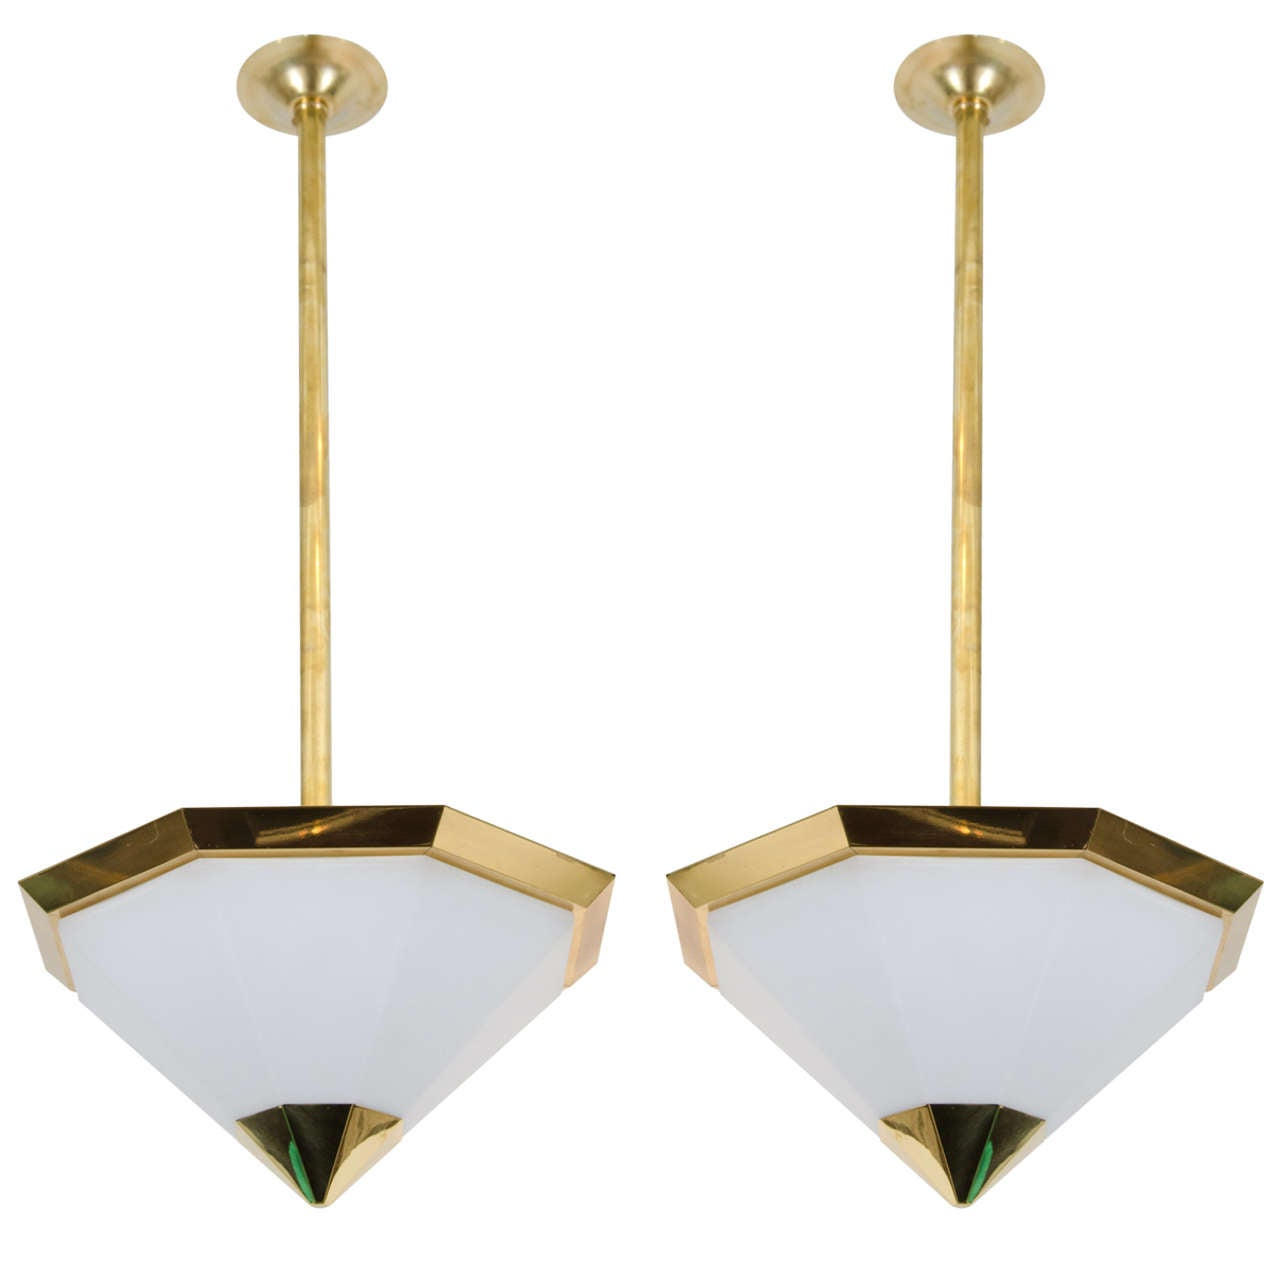 Brass And Frosted Glass Pendant Light Fixtures At 1stdibs